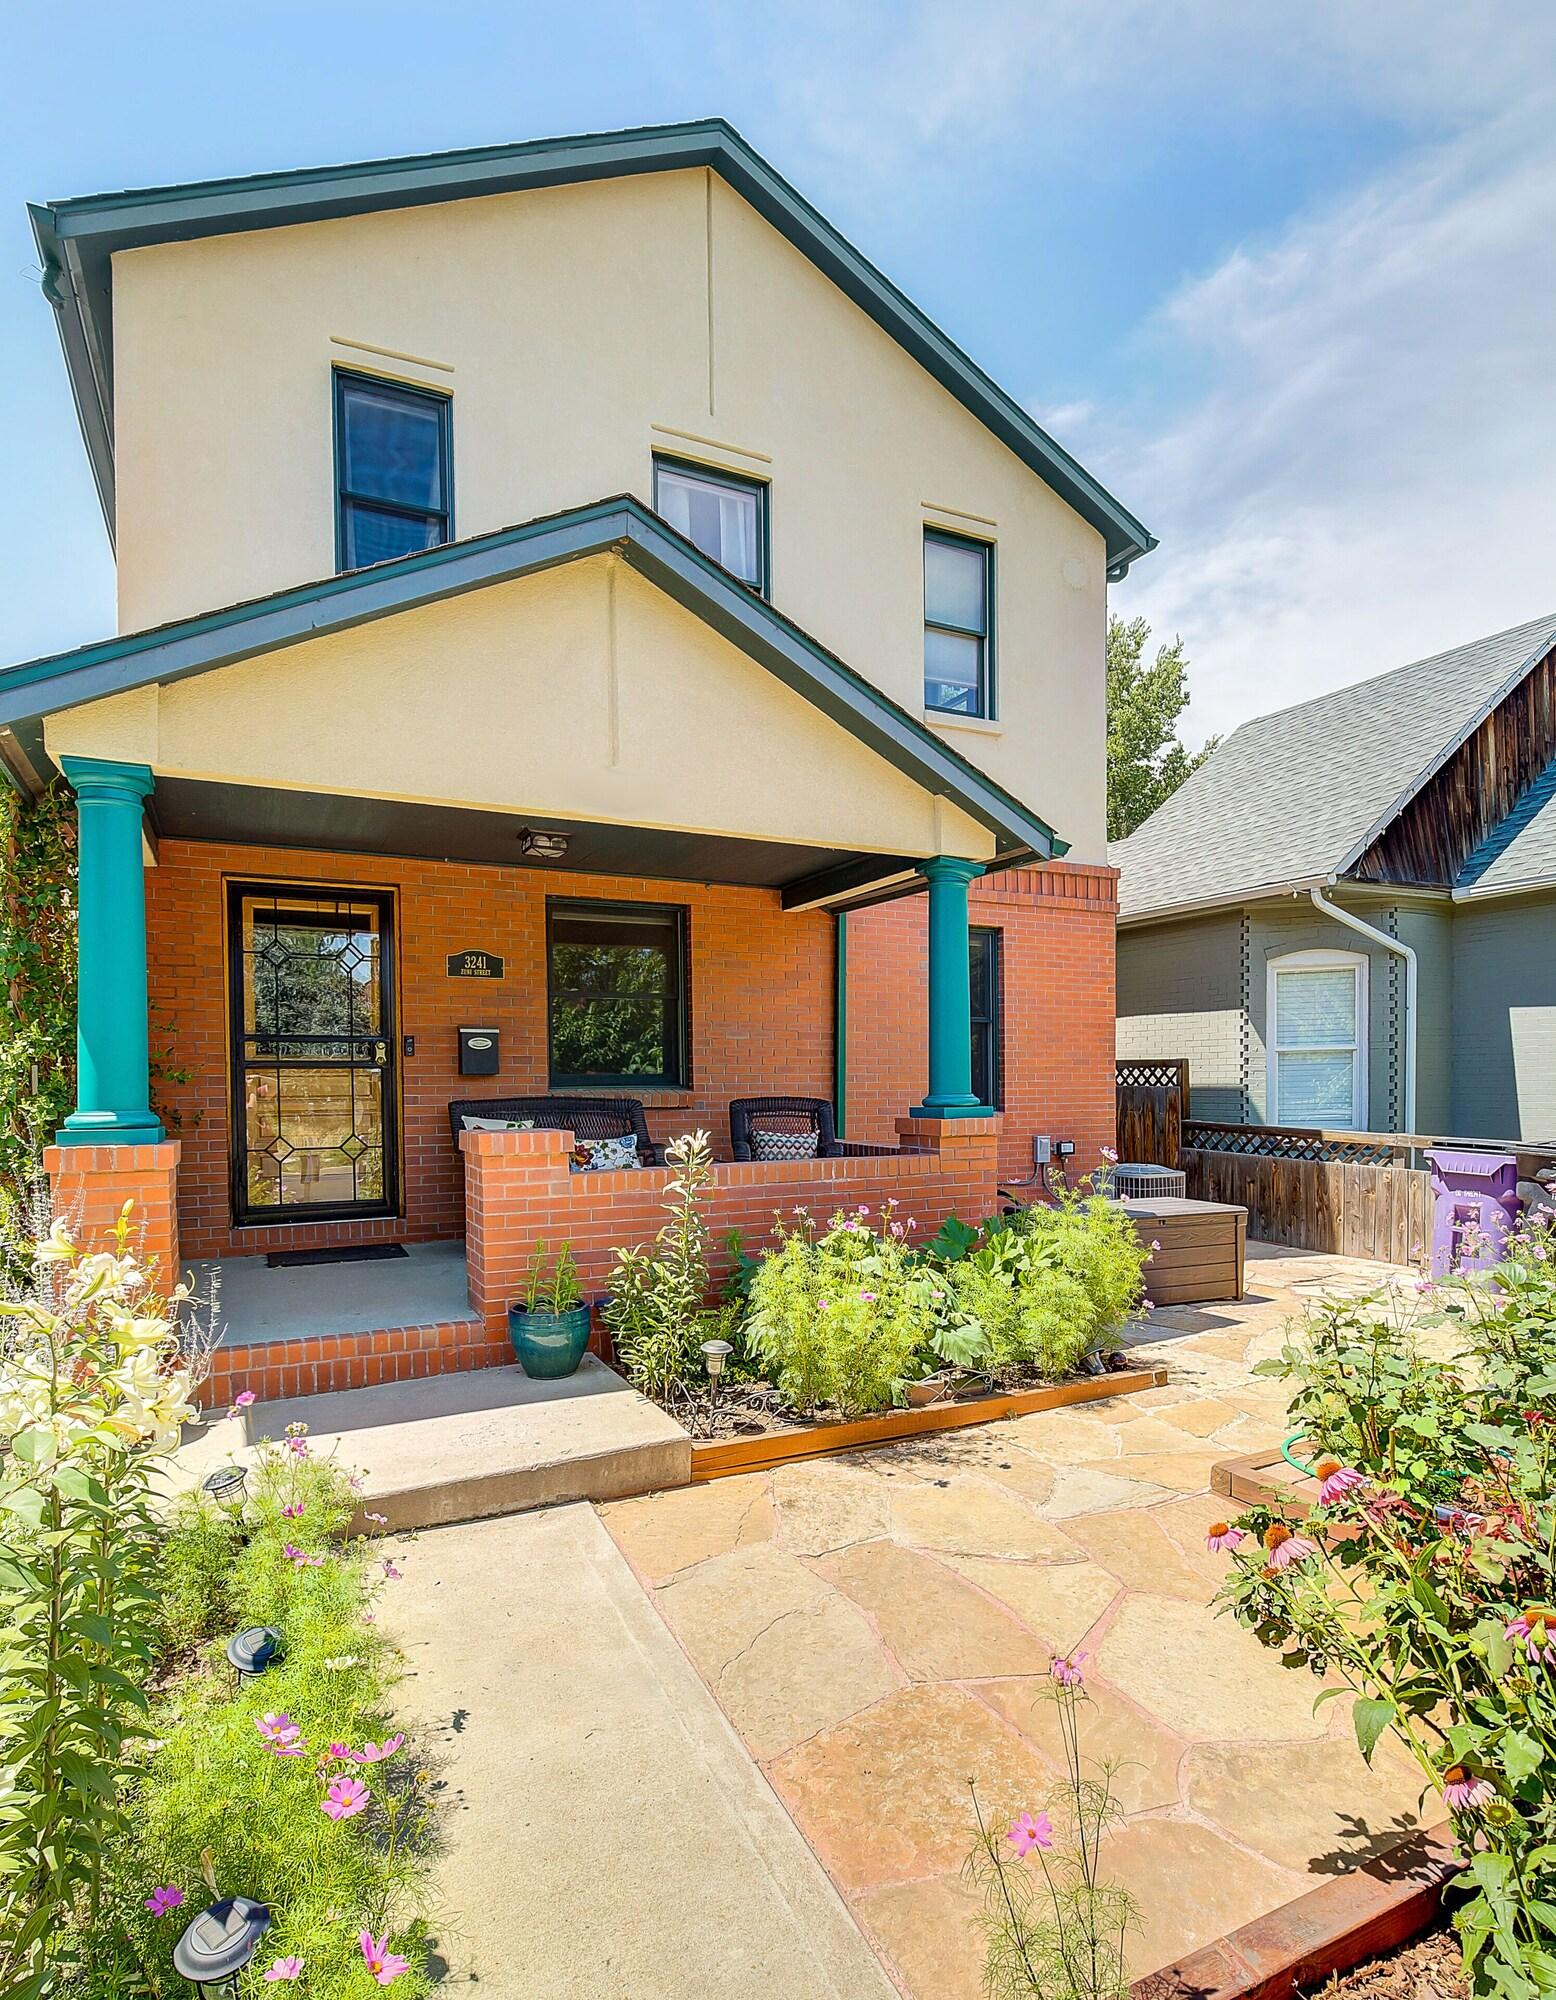 LOHI Cozy Heart of Highlands